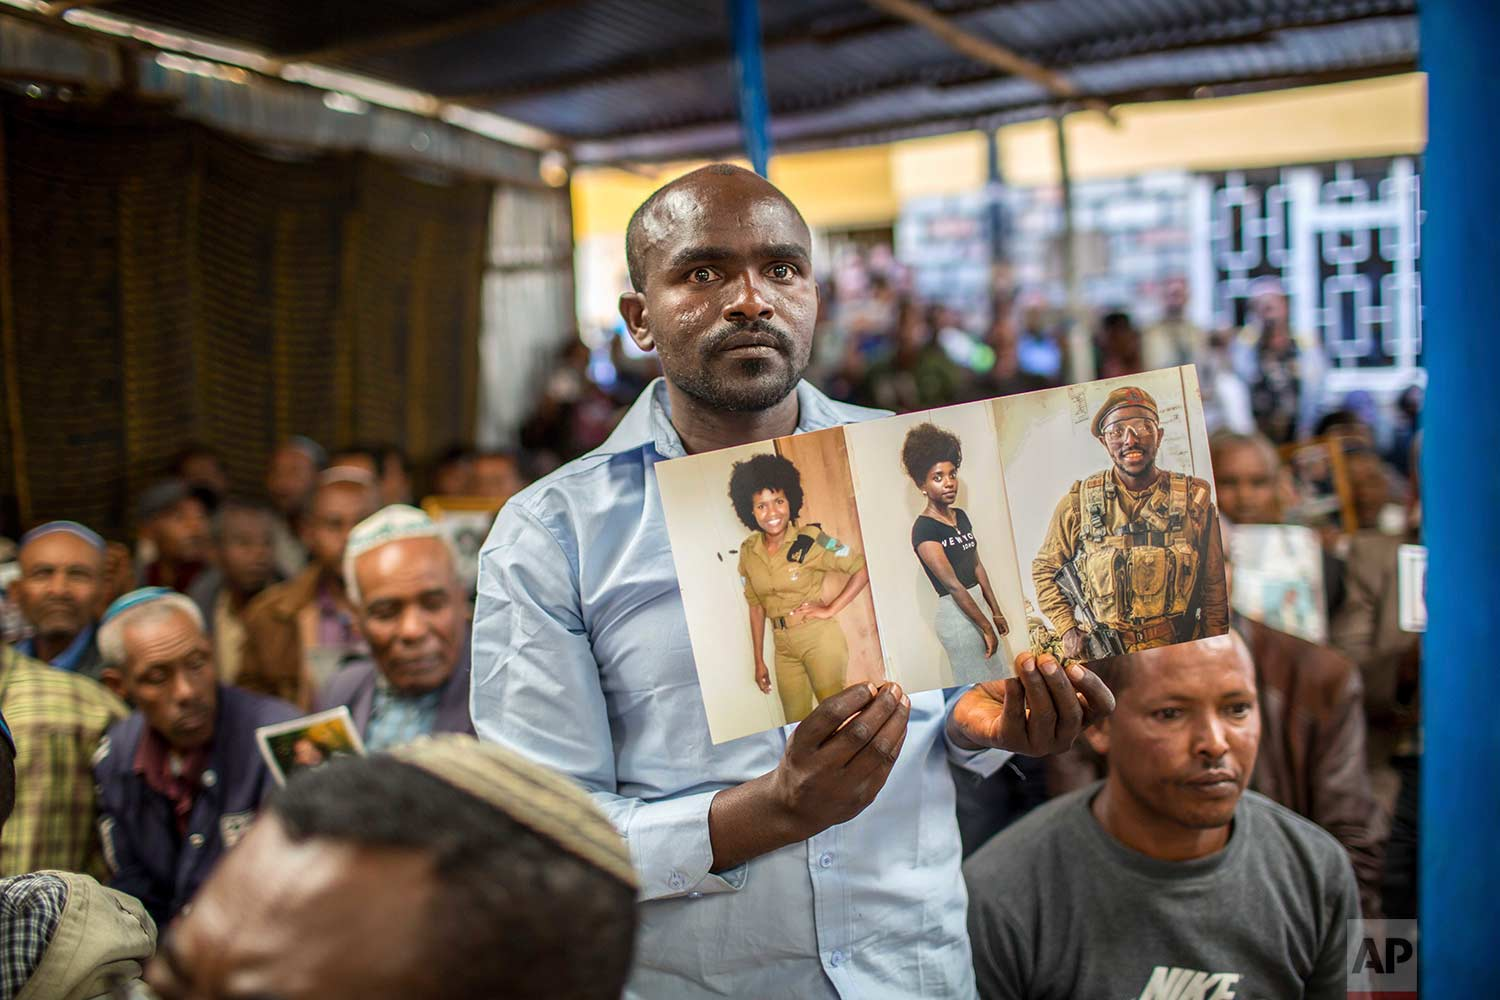 Members of Ethiopia's Jewish community hold pictures of their relatives in Israel during a solidarity event at the synagogue in Addis Ababa, Ethiopia, Wednesday, Feb. 28, 2018. (AP Photo/Mulugeta Ayene)